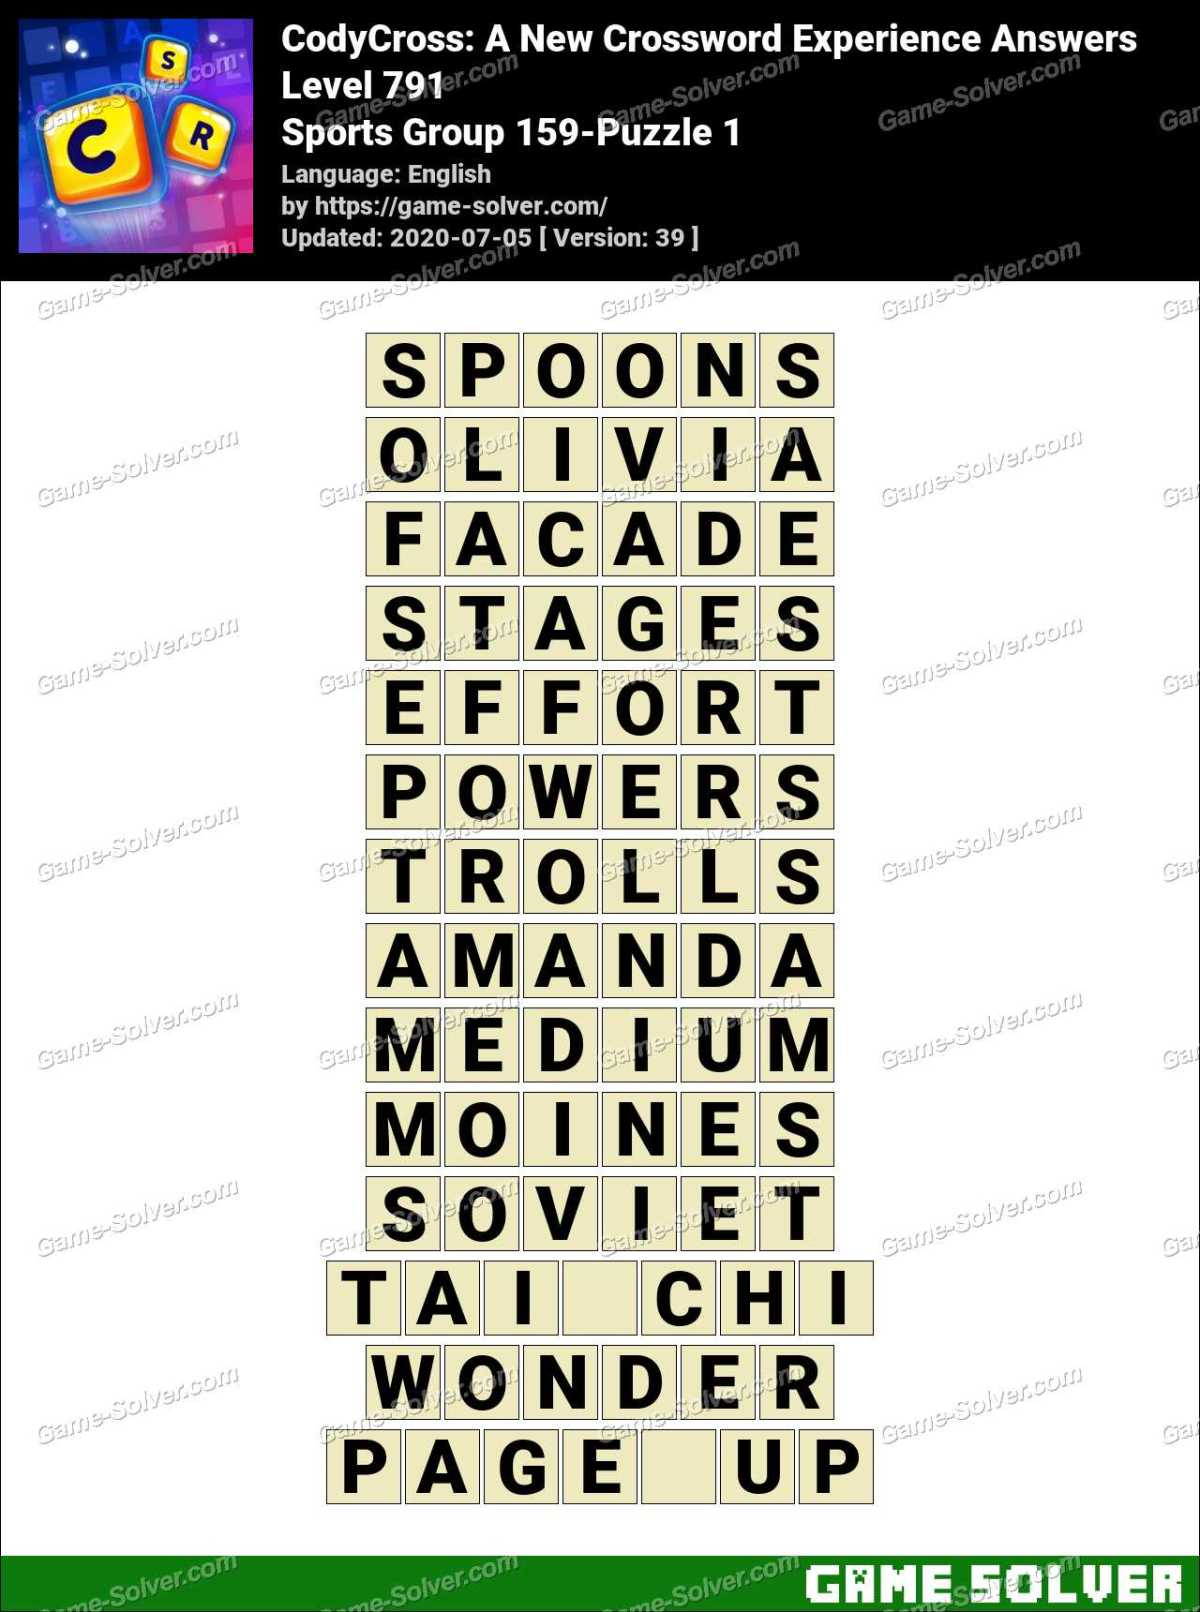 CodyCross Sports Group 159-Puzzle 1 Answers